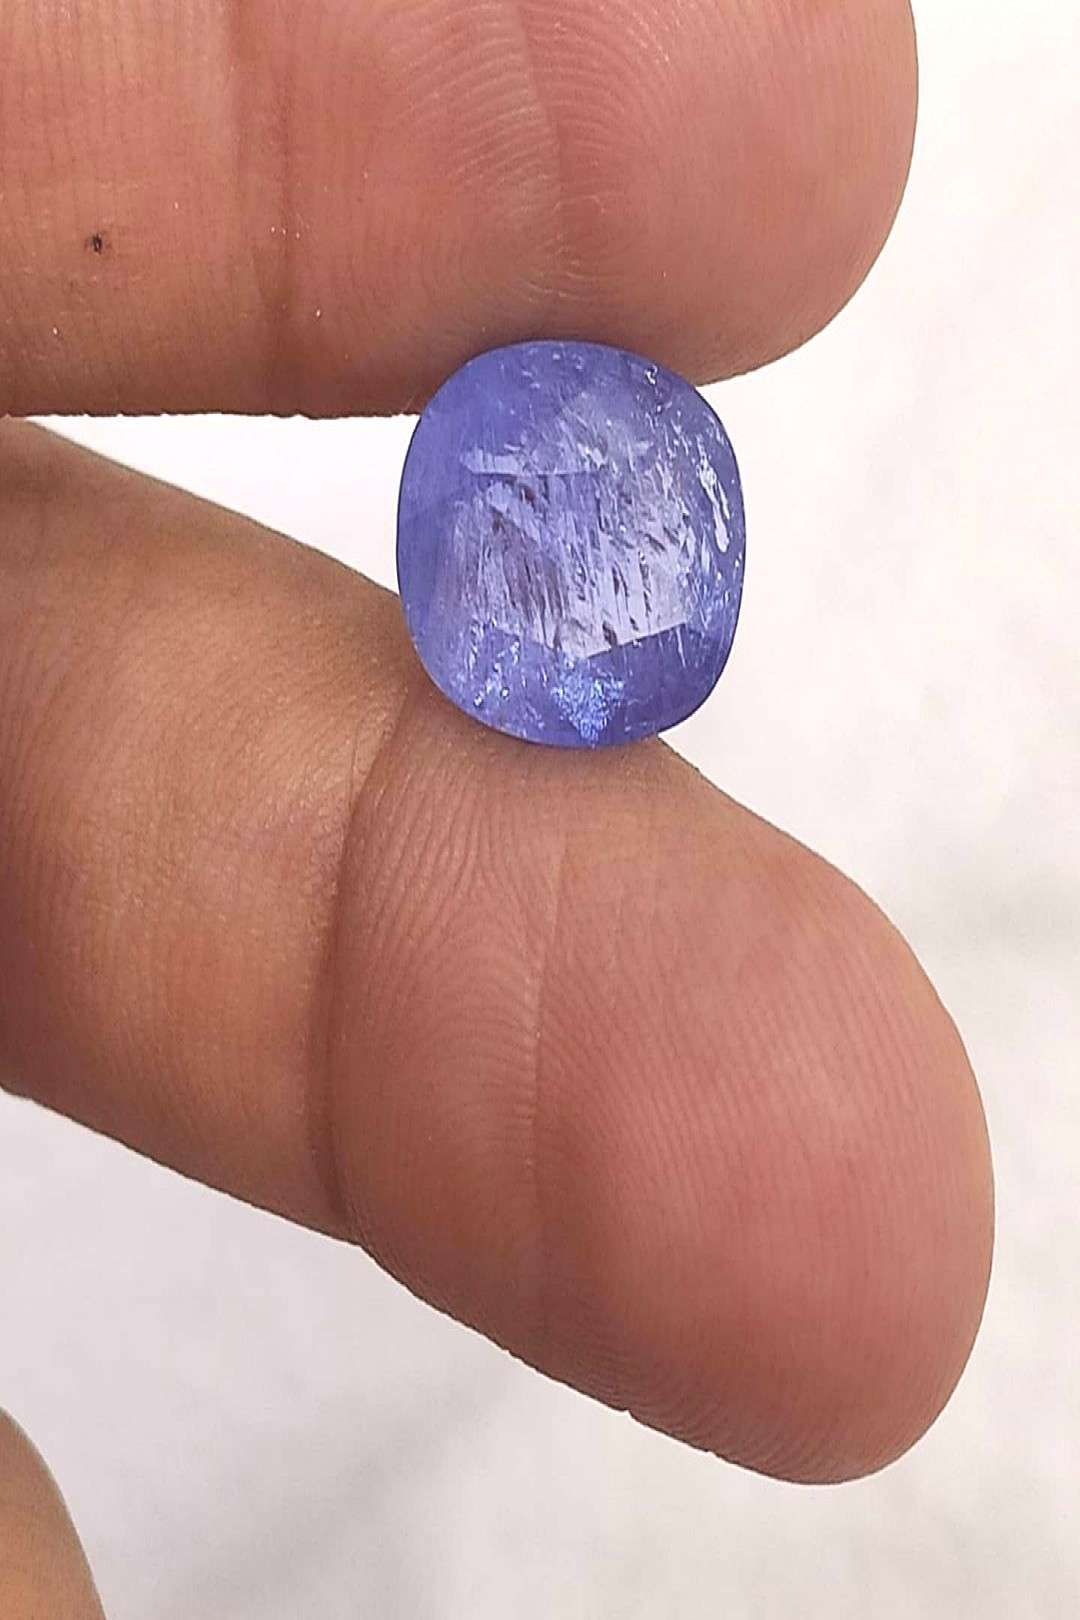 #bluesapphire #natural #closeup #weight #burma #price #759 #cts #per #80 #bluesapphire #burma natural Weight- 7.59 CTS Price- 80$ per CTS You can find Cocktail rings and more on our website.#bluesapphire #burma natural Weight- 7.59 CTS Pr...